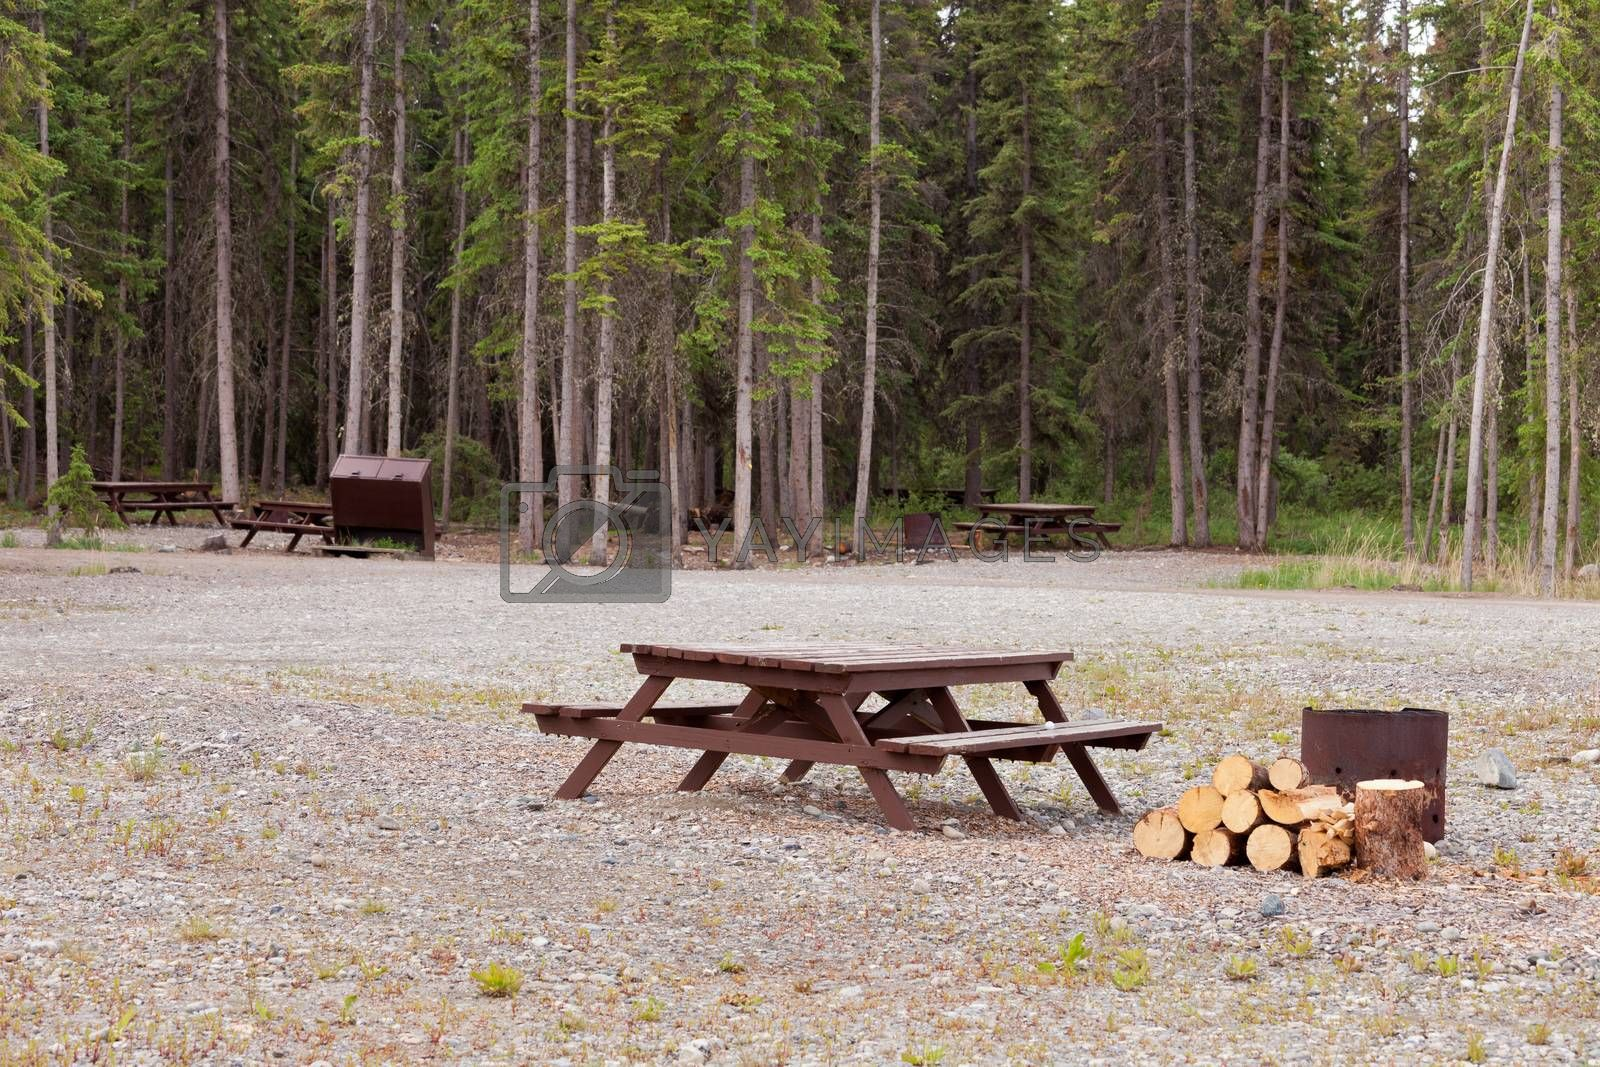 Camp ground campsites camping table firepits by PiLens